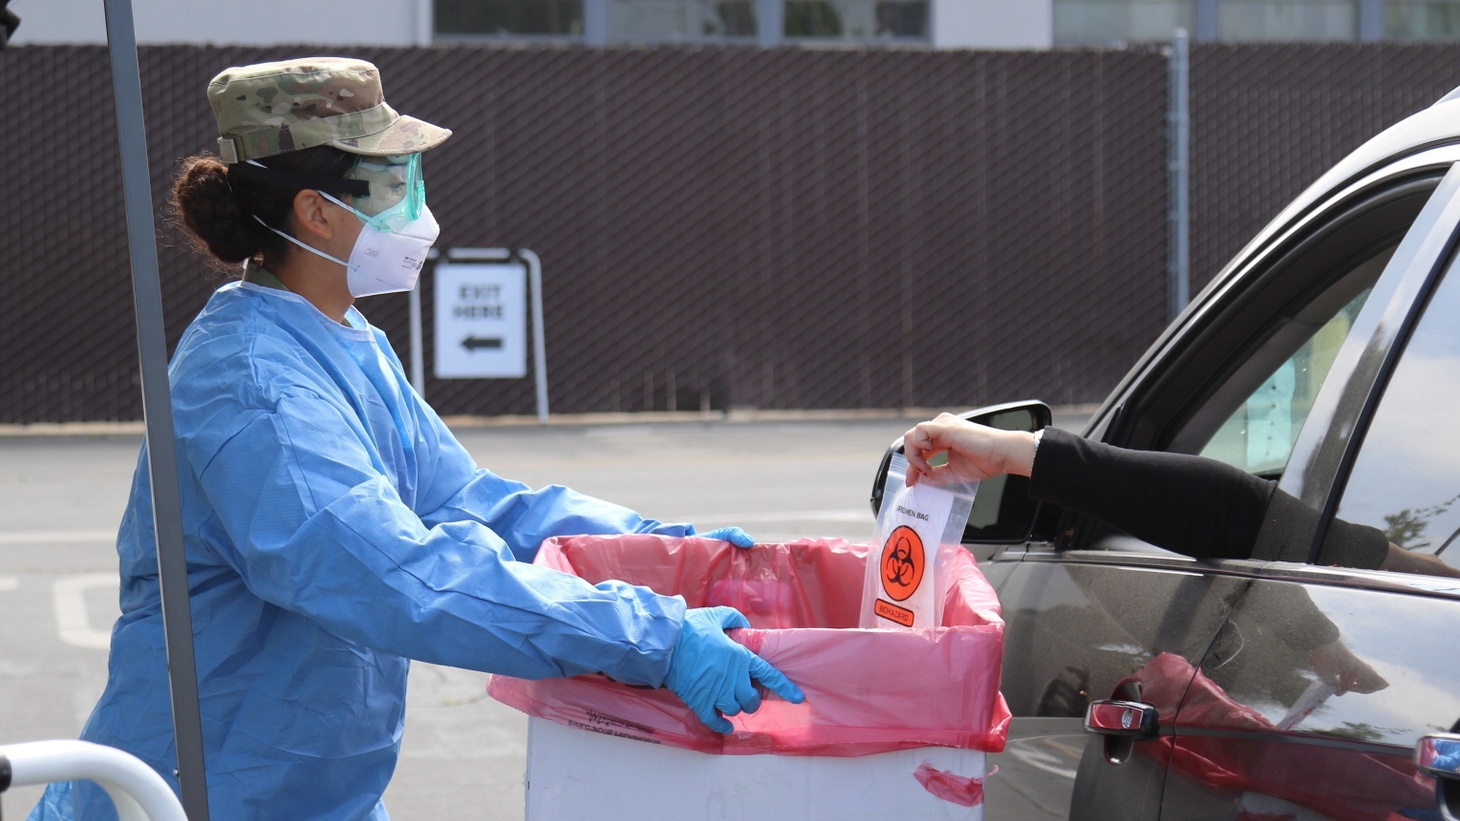 U.S. Army Pfc. Cynthia Veliz of the California Army National Guard collects a COVID-19 test specimen at a drive-thru assessment site in Long Beach, California, April 27, 2020.